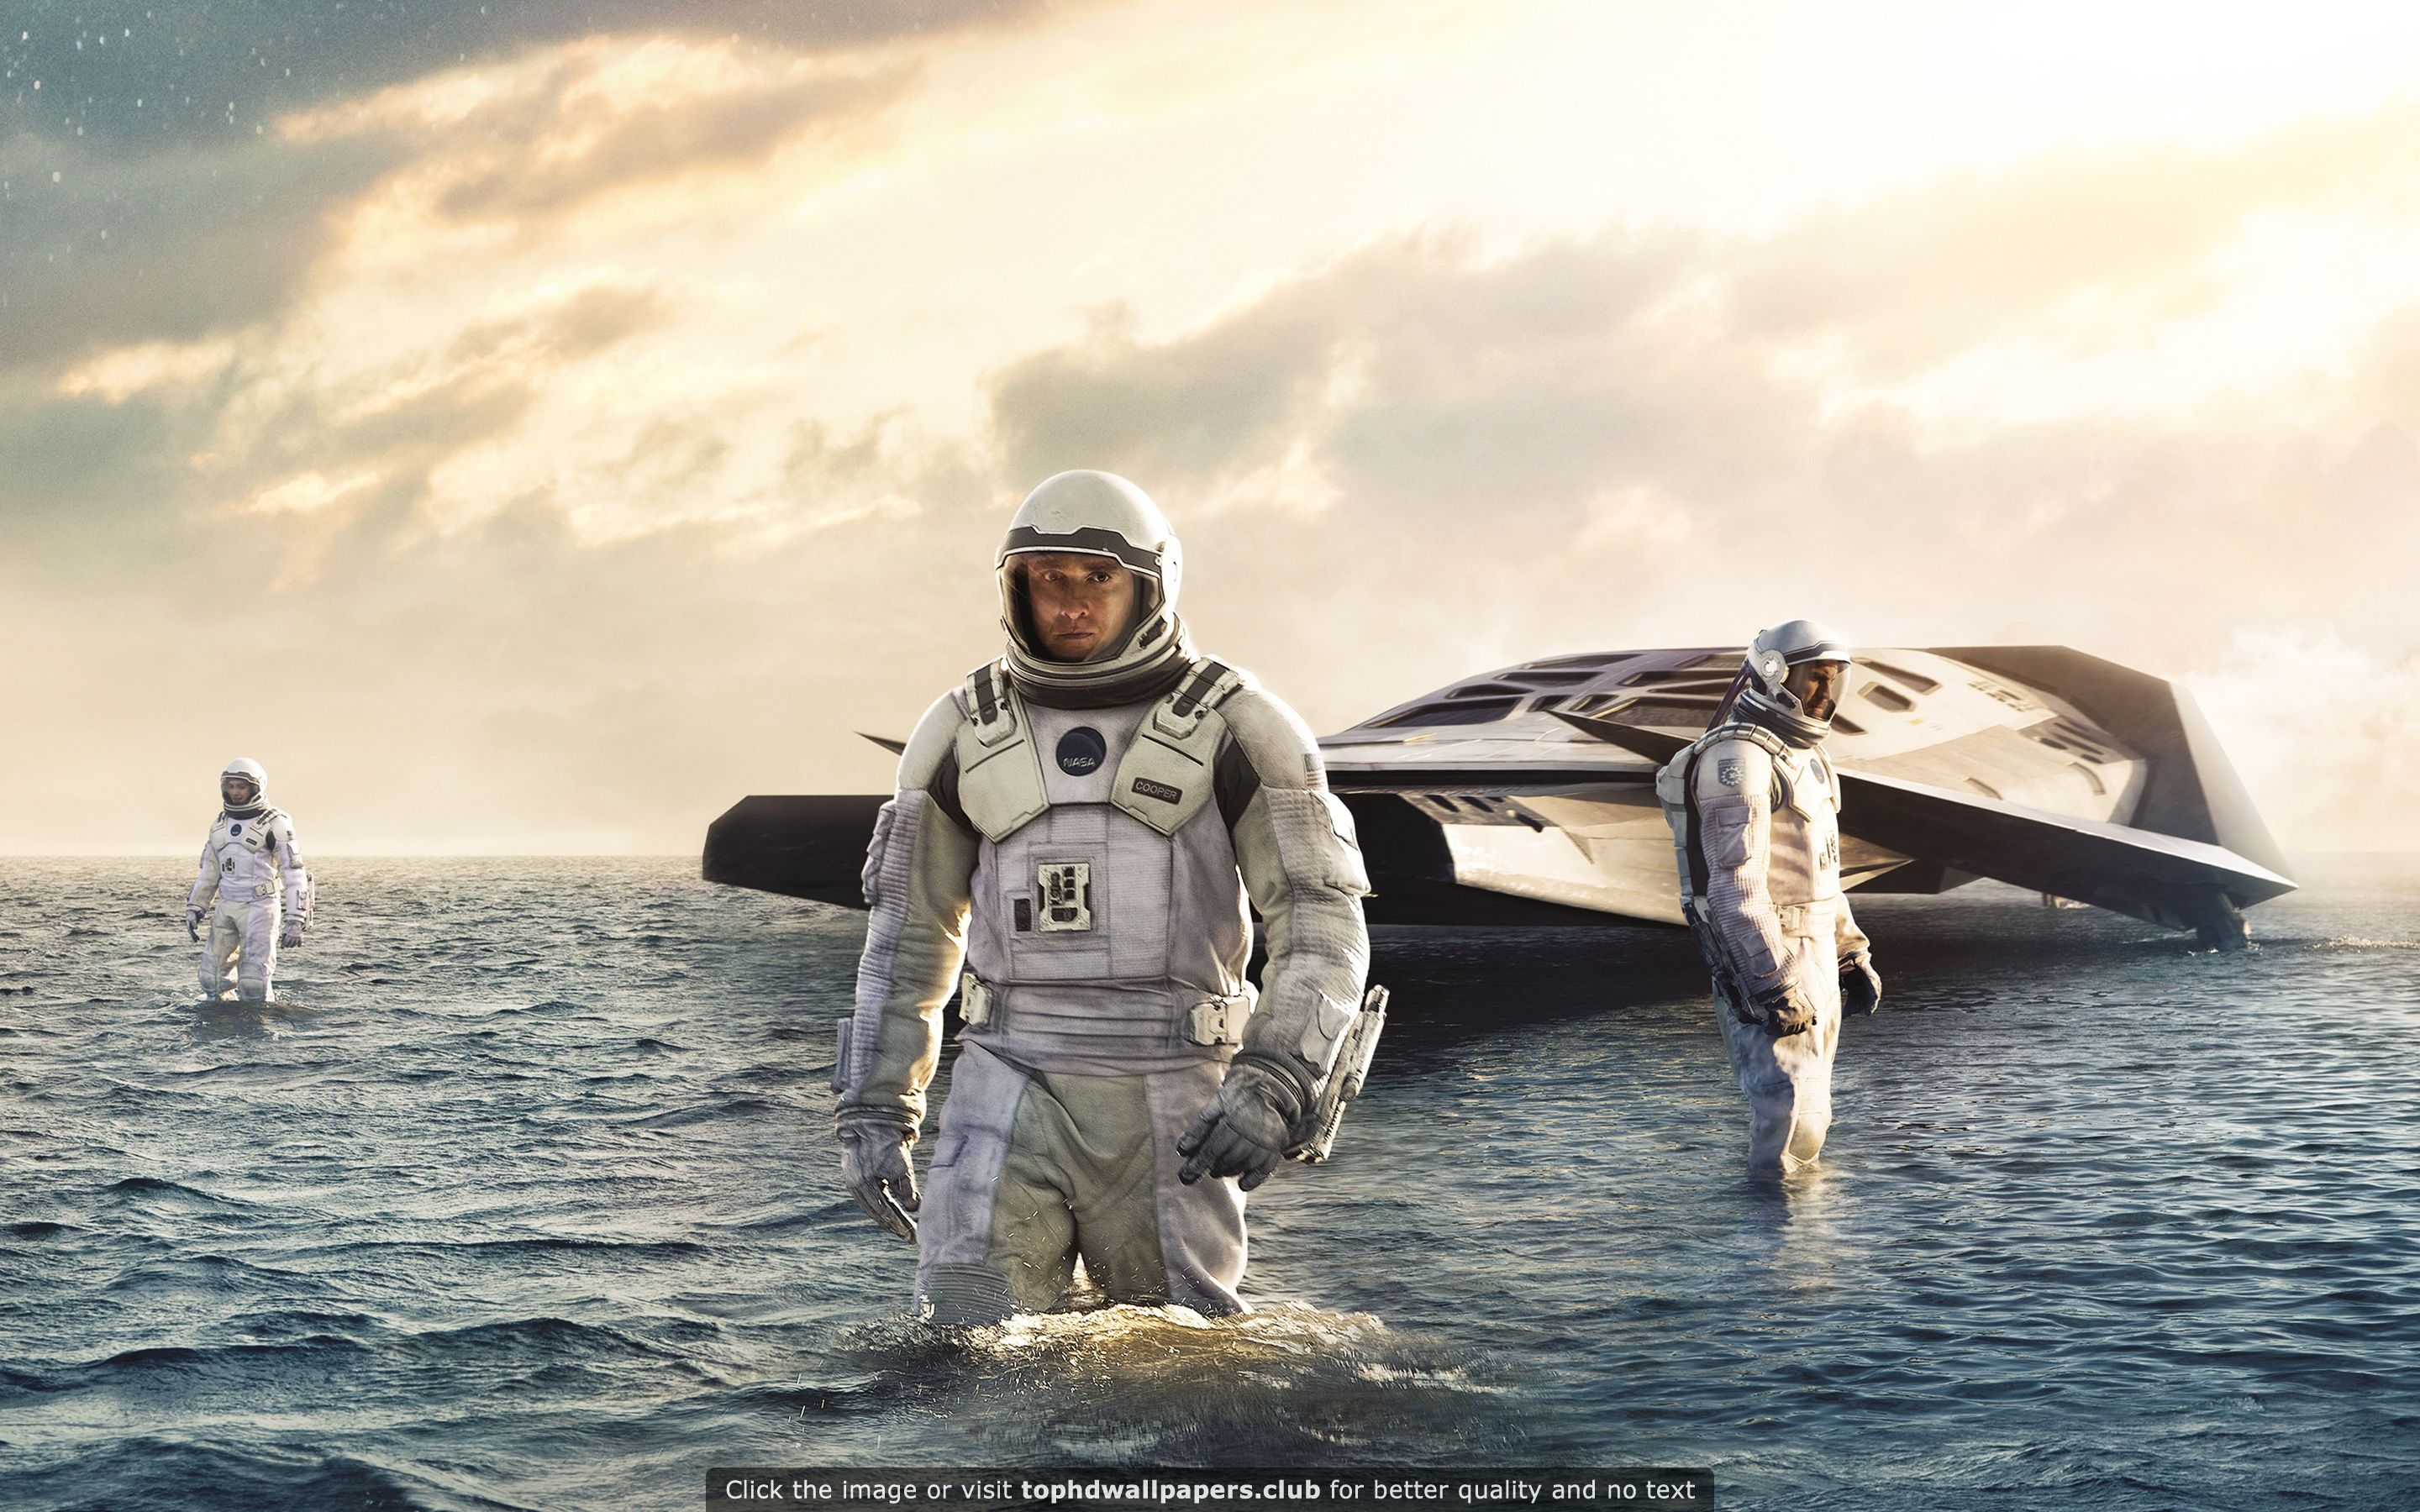 interstellar movie hd wallpaper for your pc, mac or mobile device